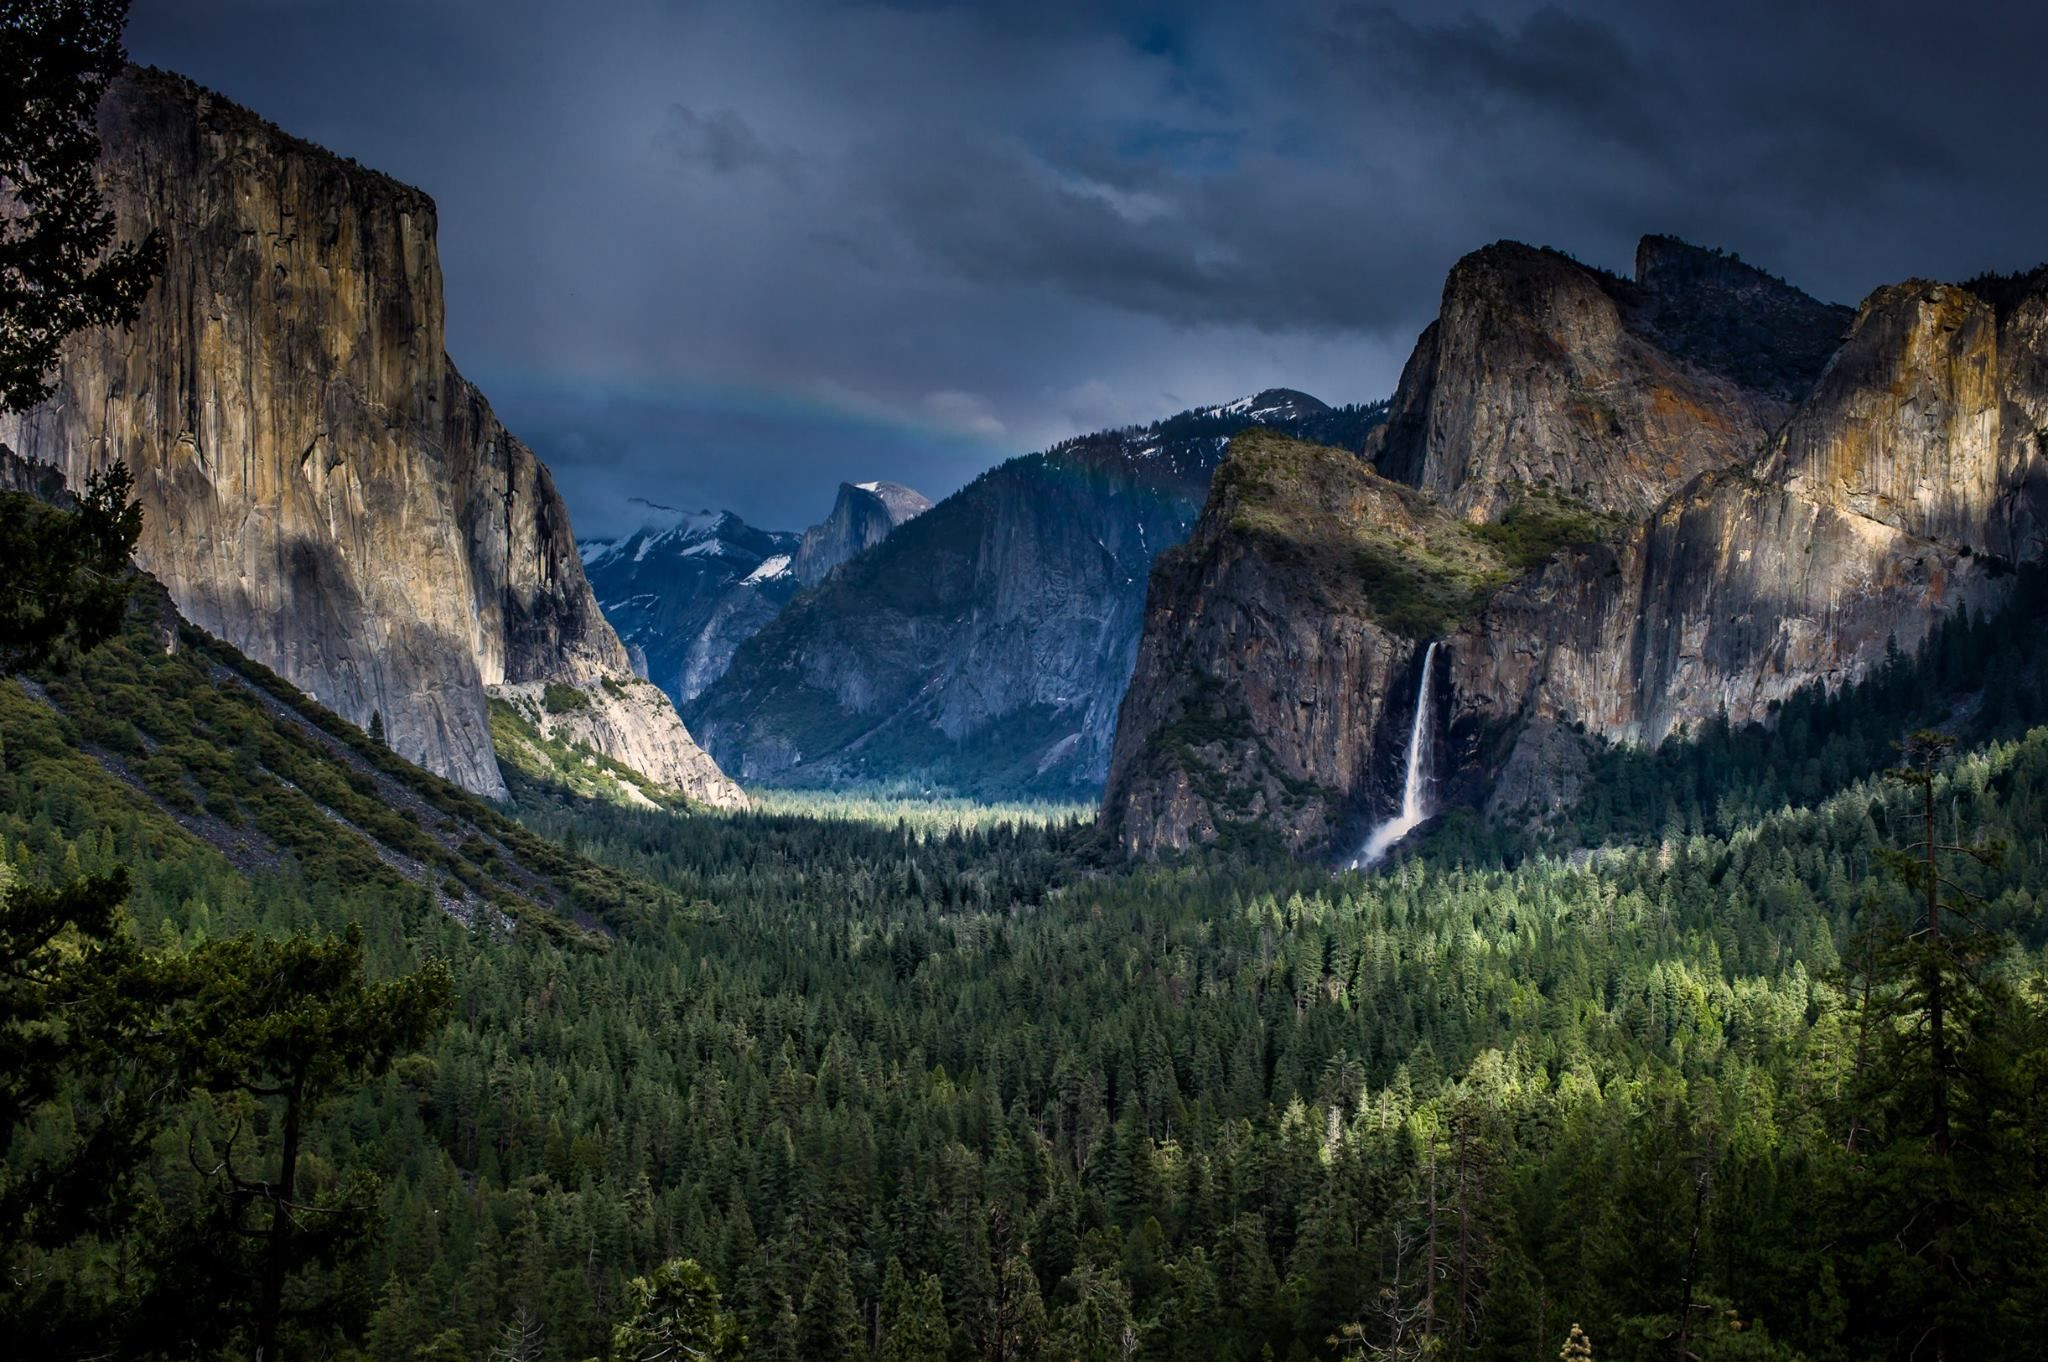 Yosemite Valley. Photo by Ece Batchelder.